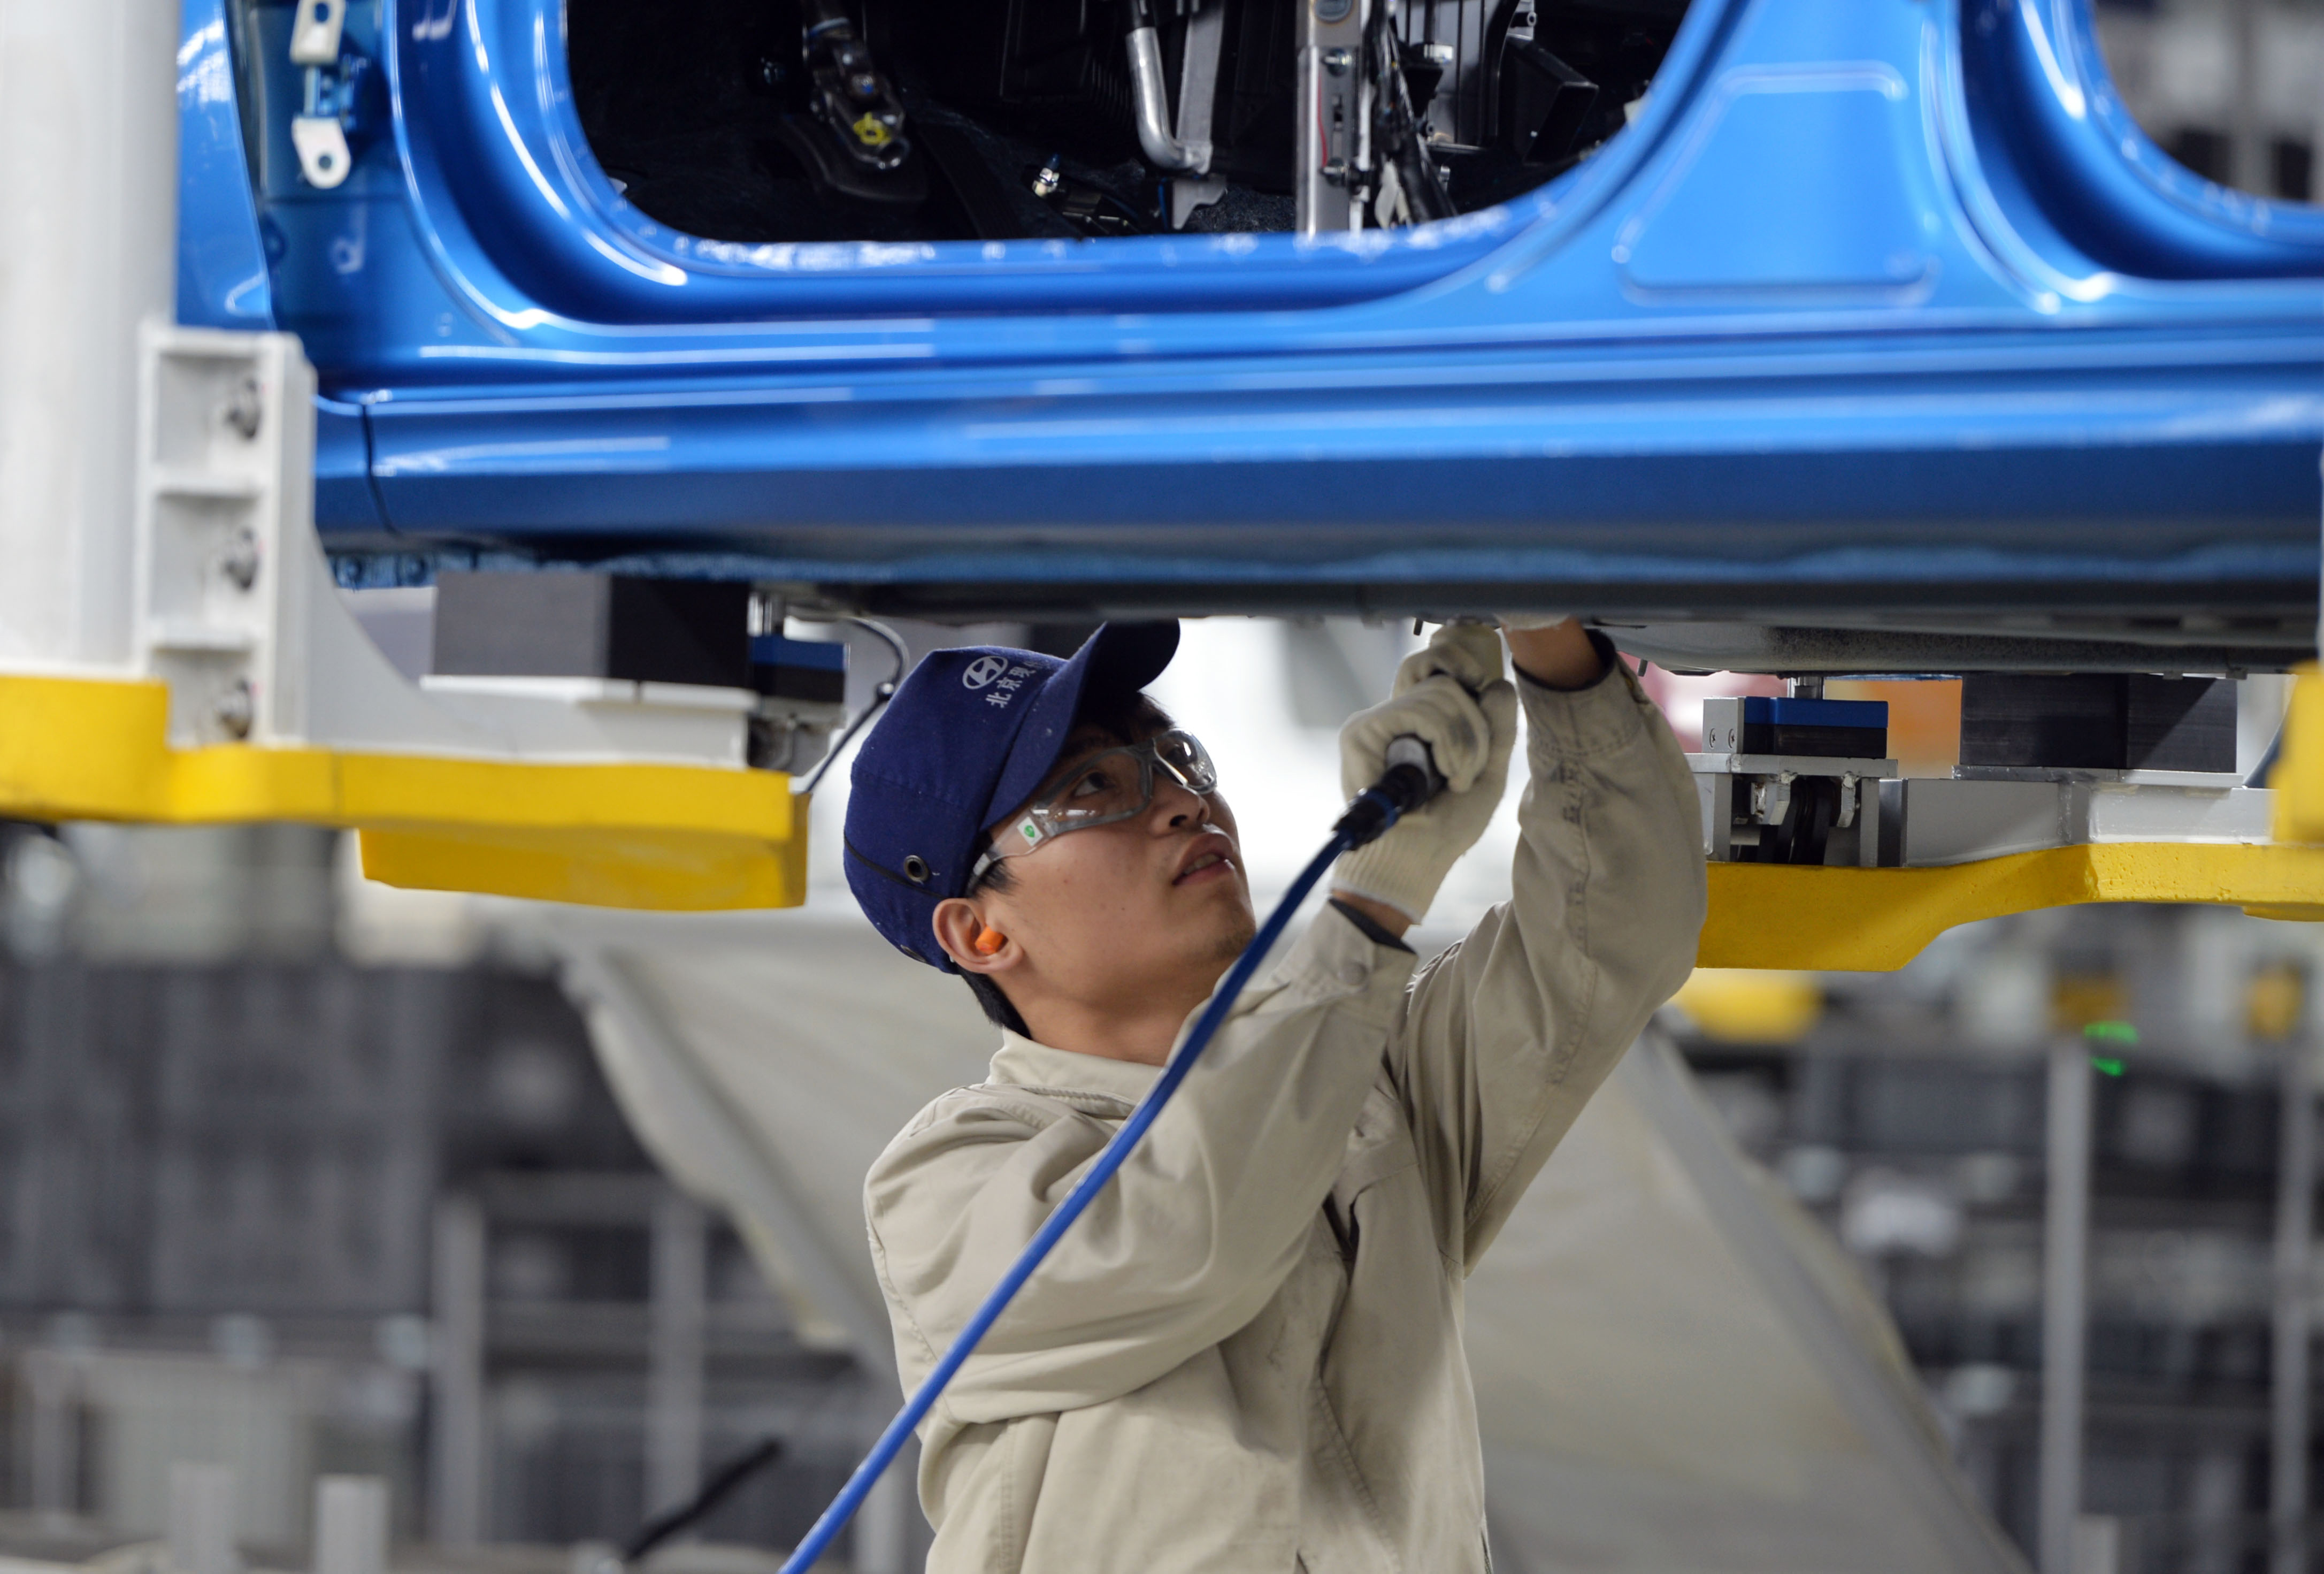 A worker in Hyundai's Cangzhou factory in China tightens screws on a vehicle.